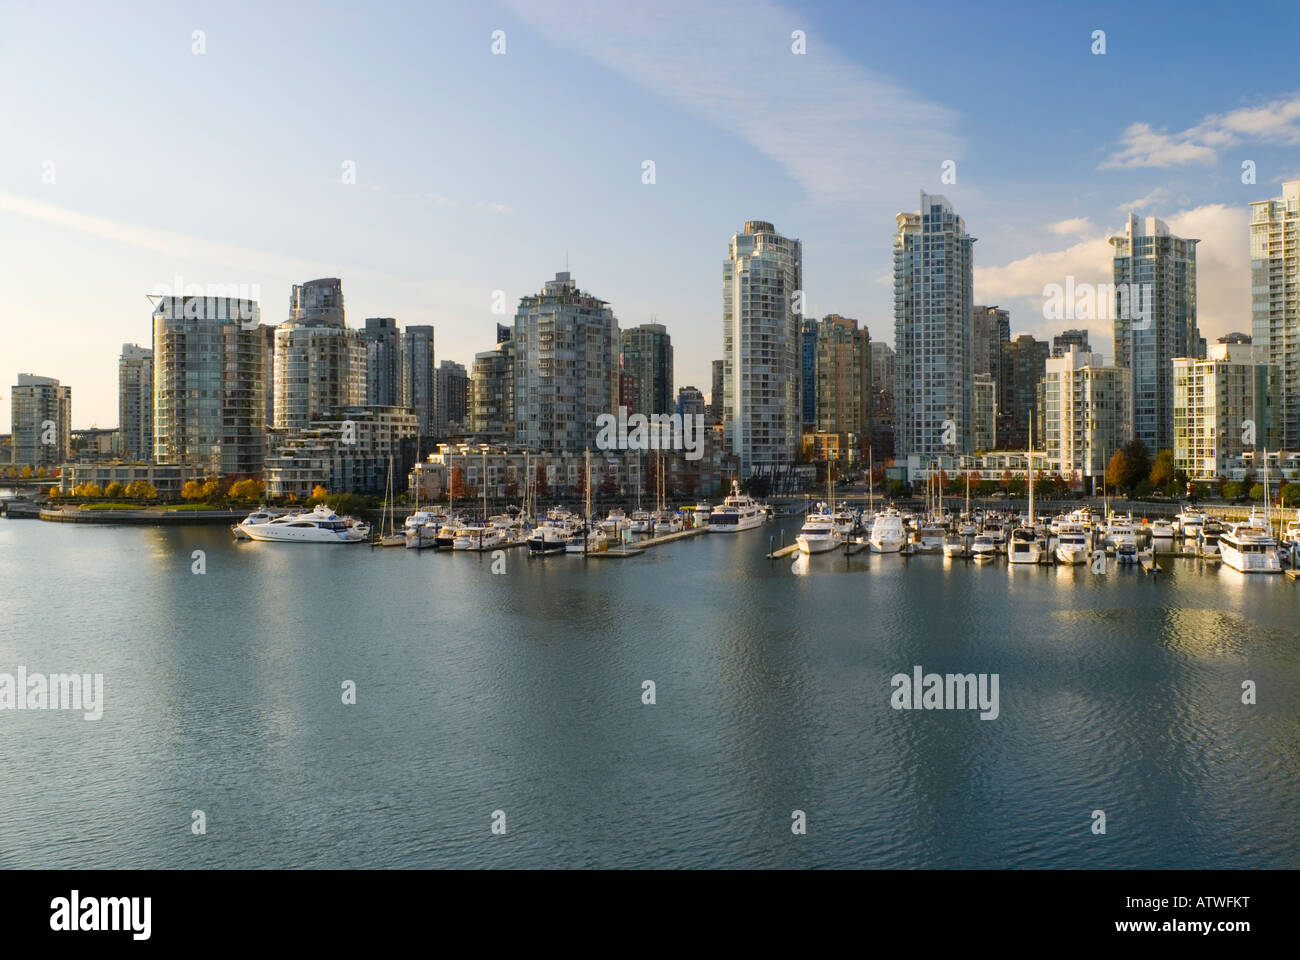 Yaletown Skyline at False Creek Vancouver British Columbia Canada 2007 - Stock Image